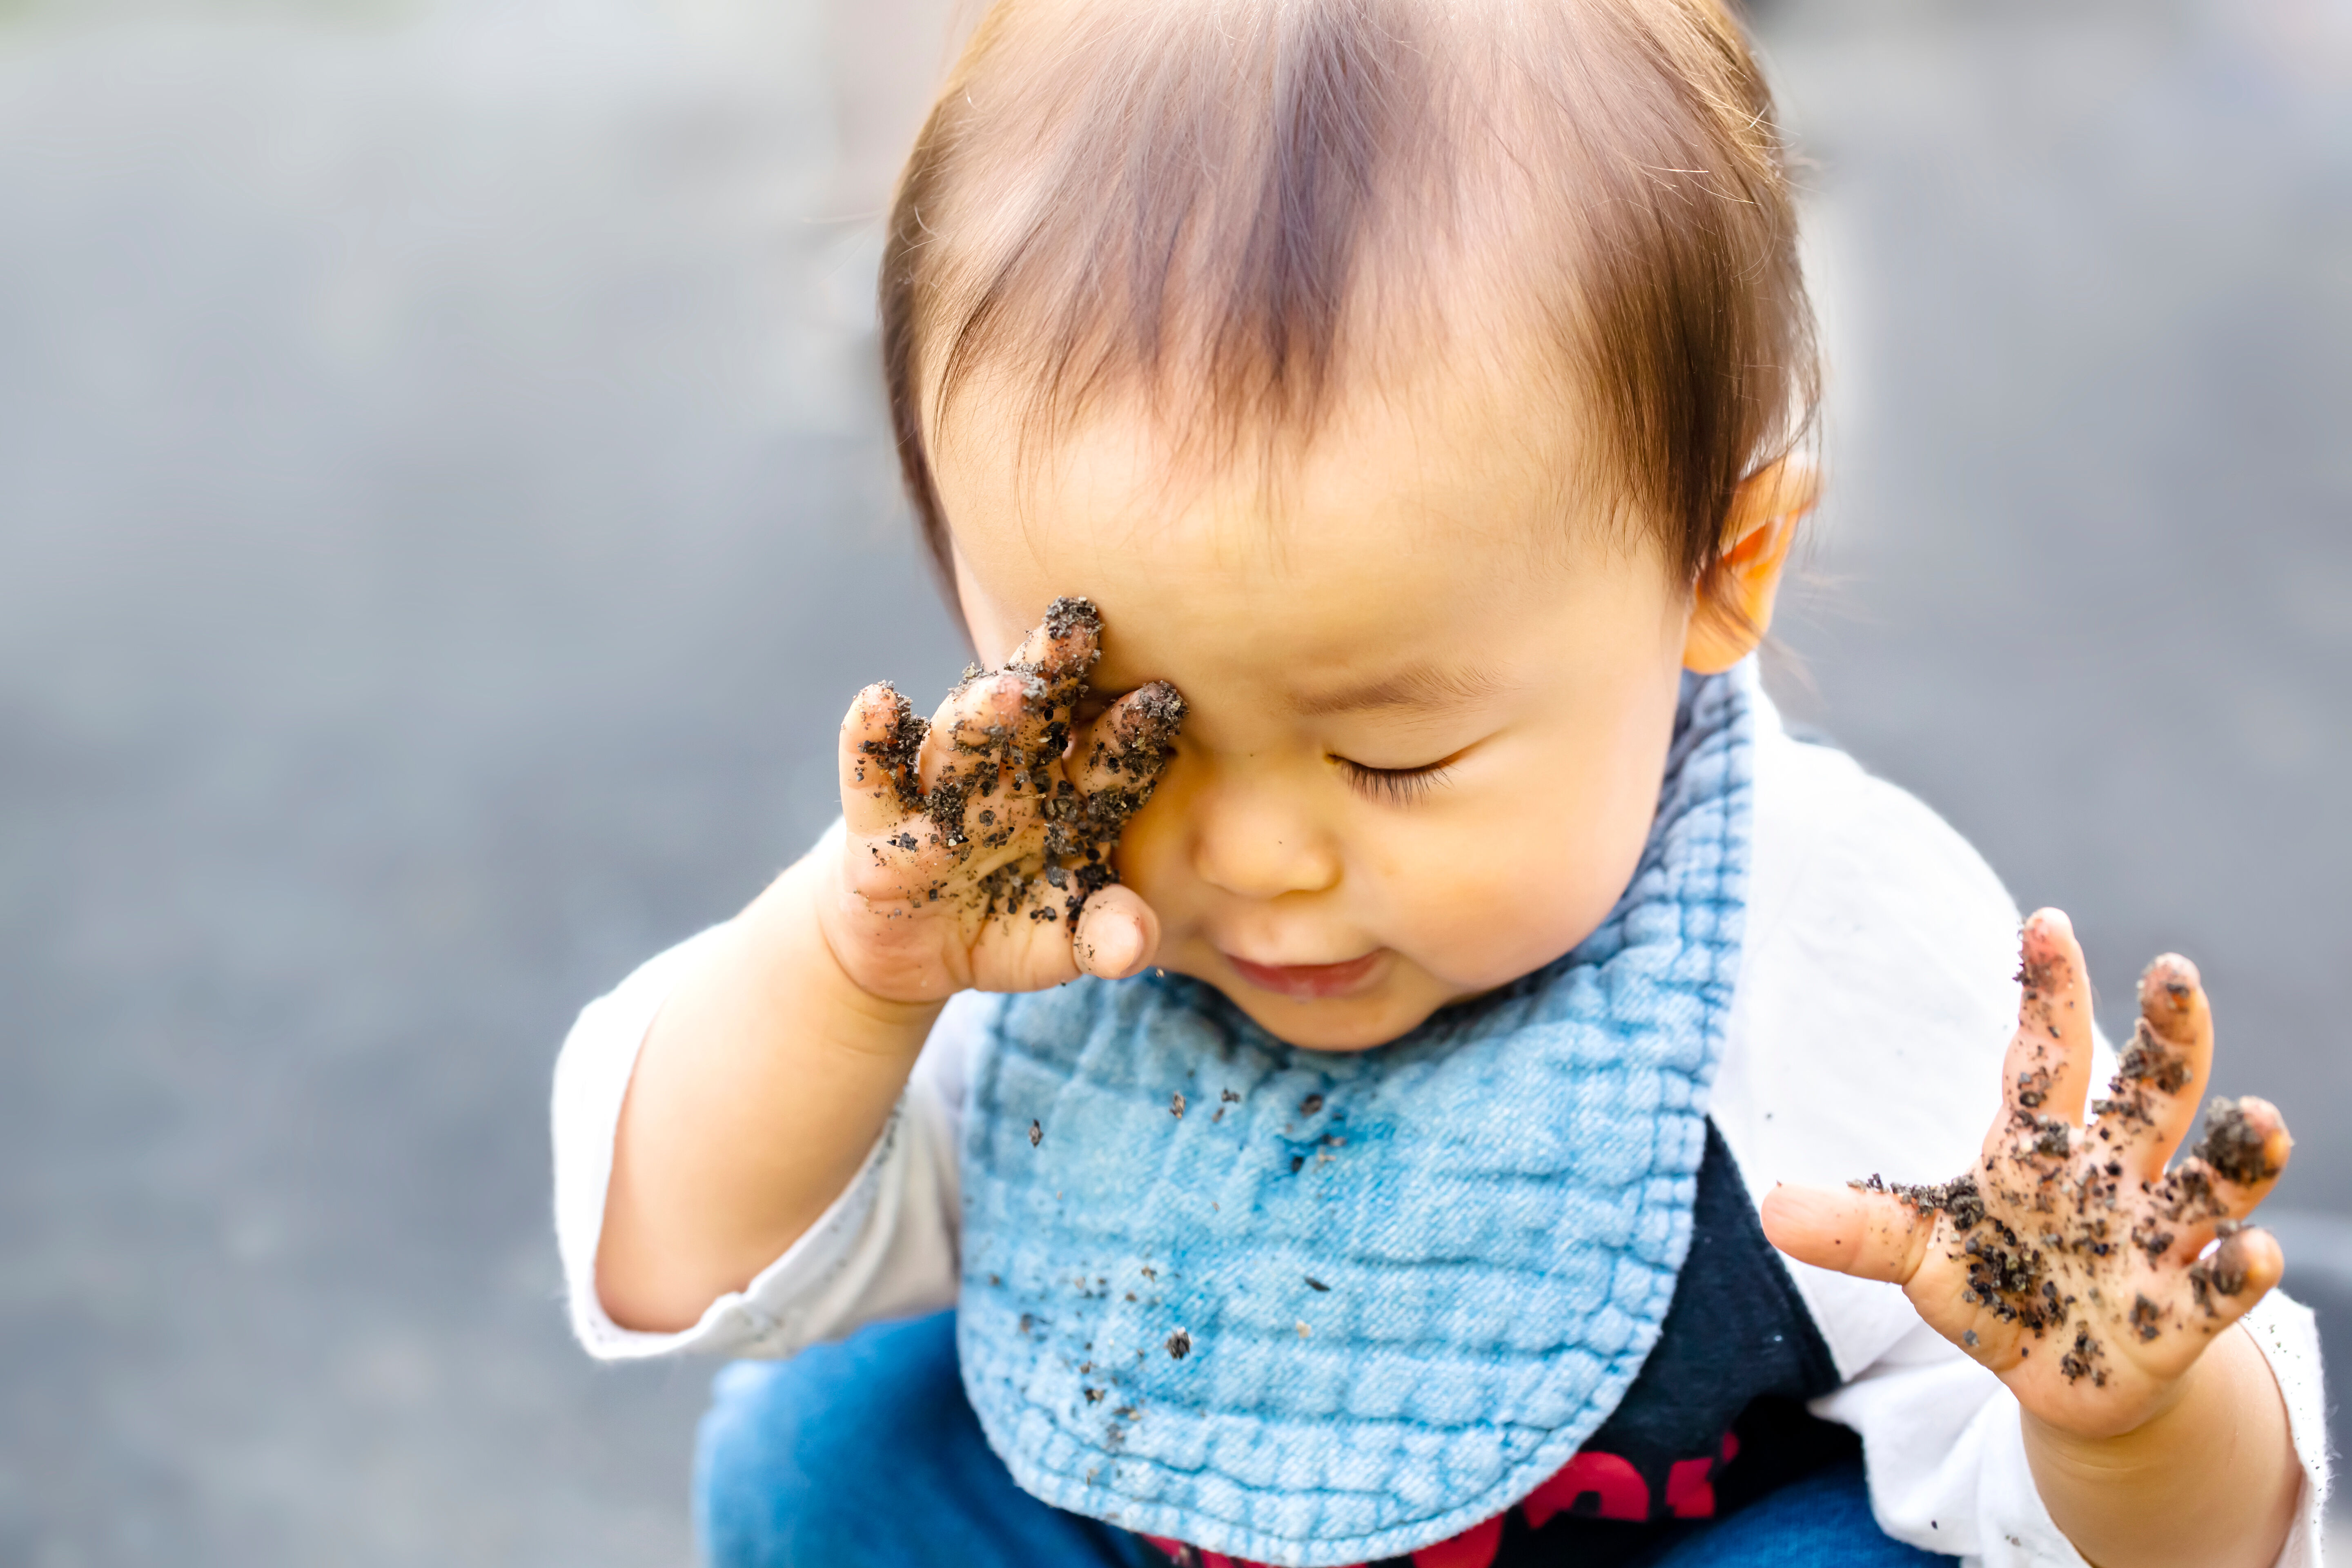 Child rubs eyes with dirty hands